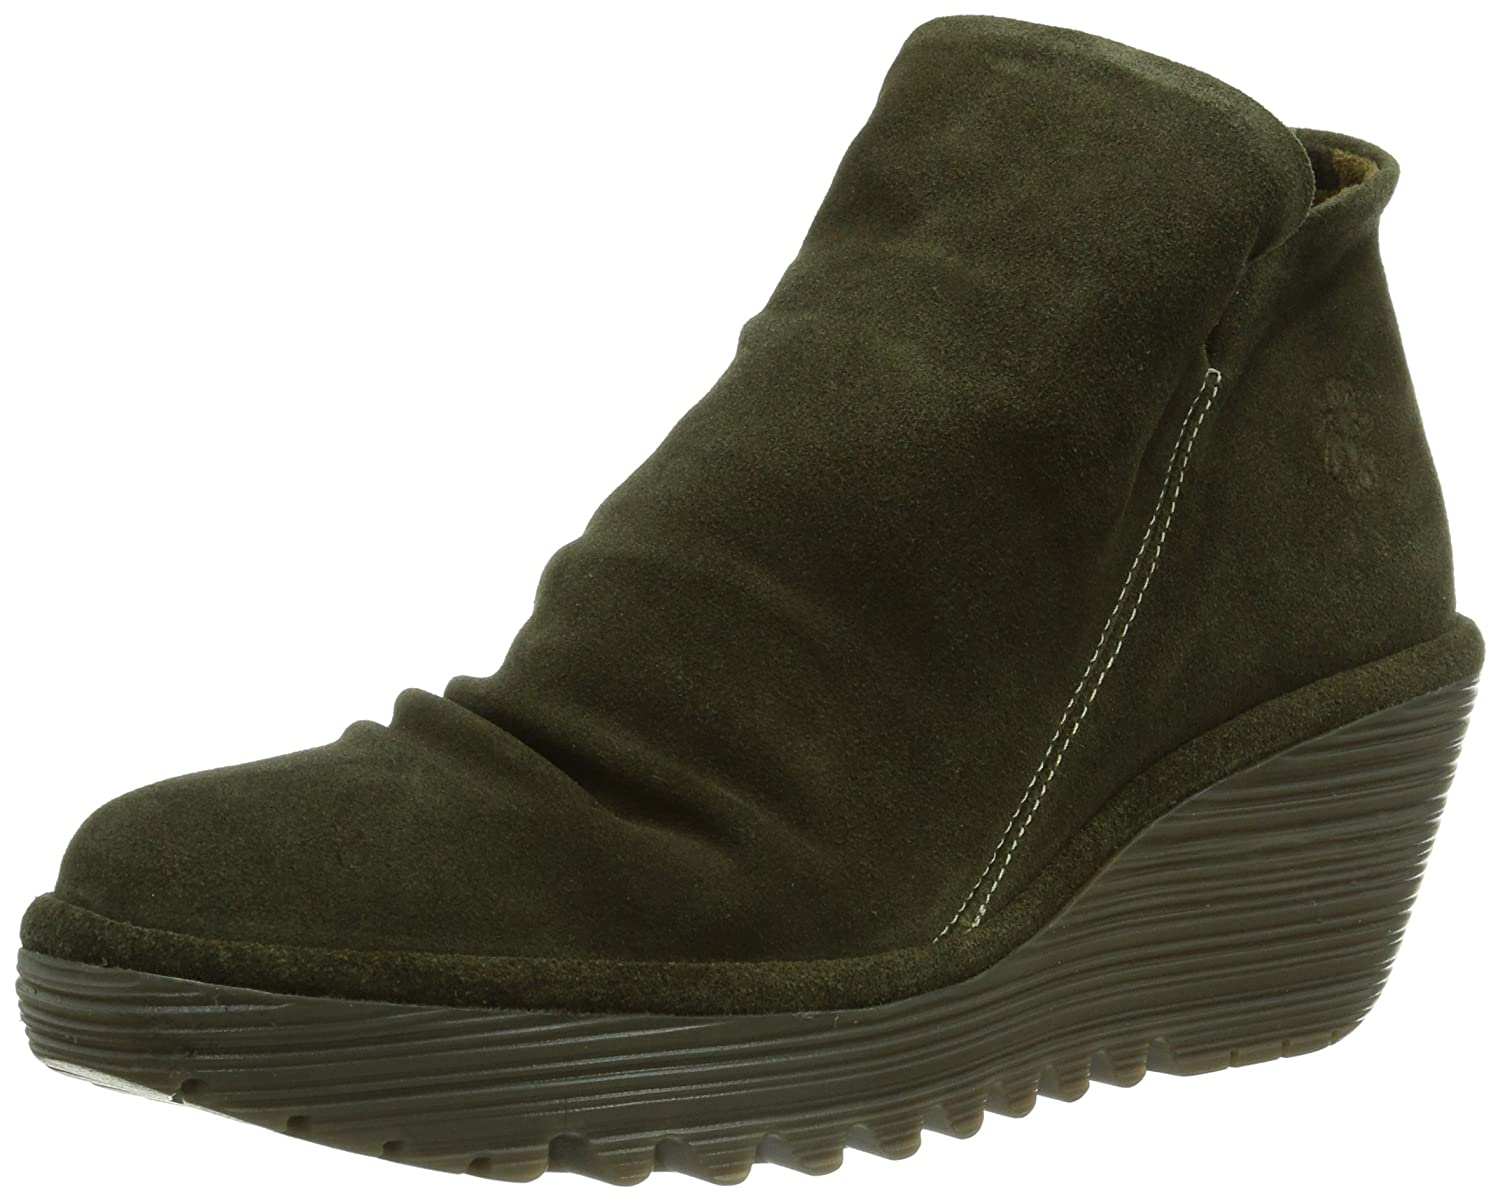 FLY London Women's Yip Boot B00IYJEE8I 41 M EU / 10 B(M) US|Sludge